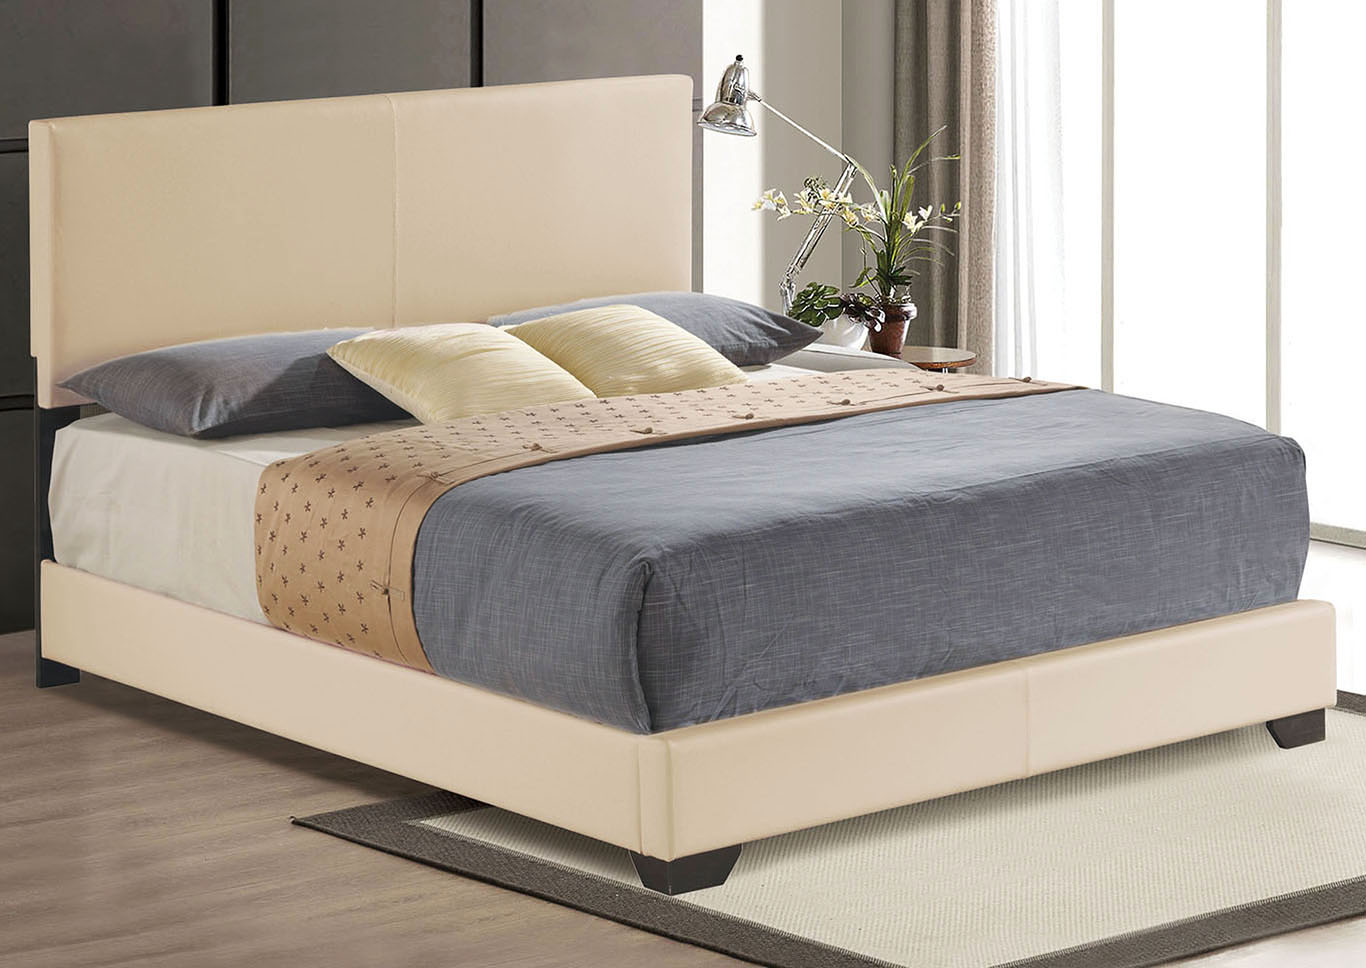 Ireland III Beige Queen Bed,Acme